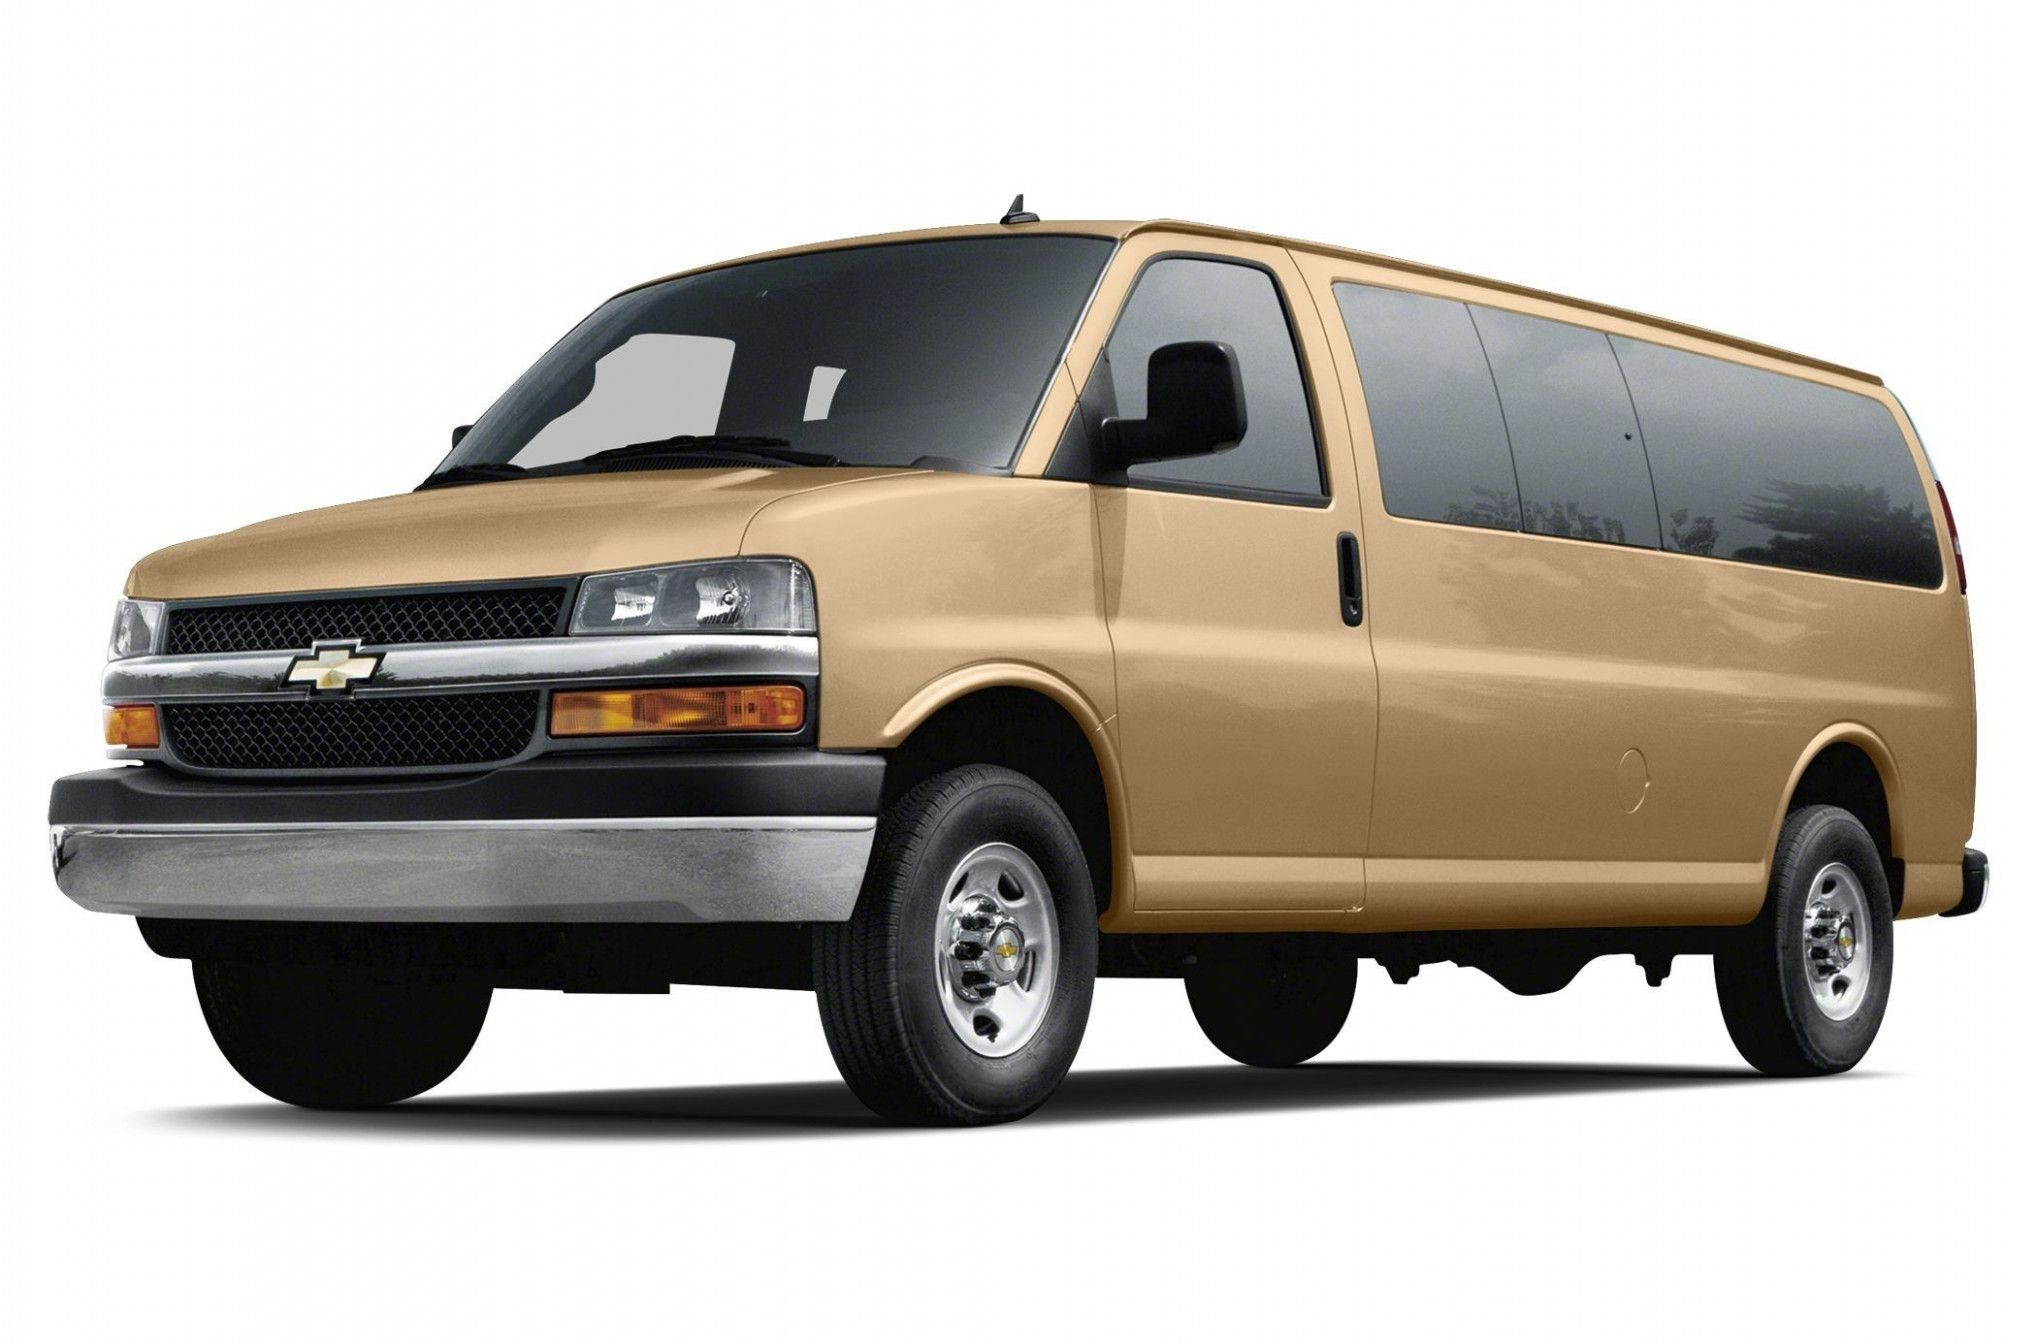 2020 Chevrolet Expressgo Van In 2020 Chevy Express Chevy Chevrolet